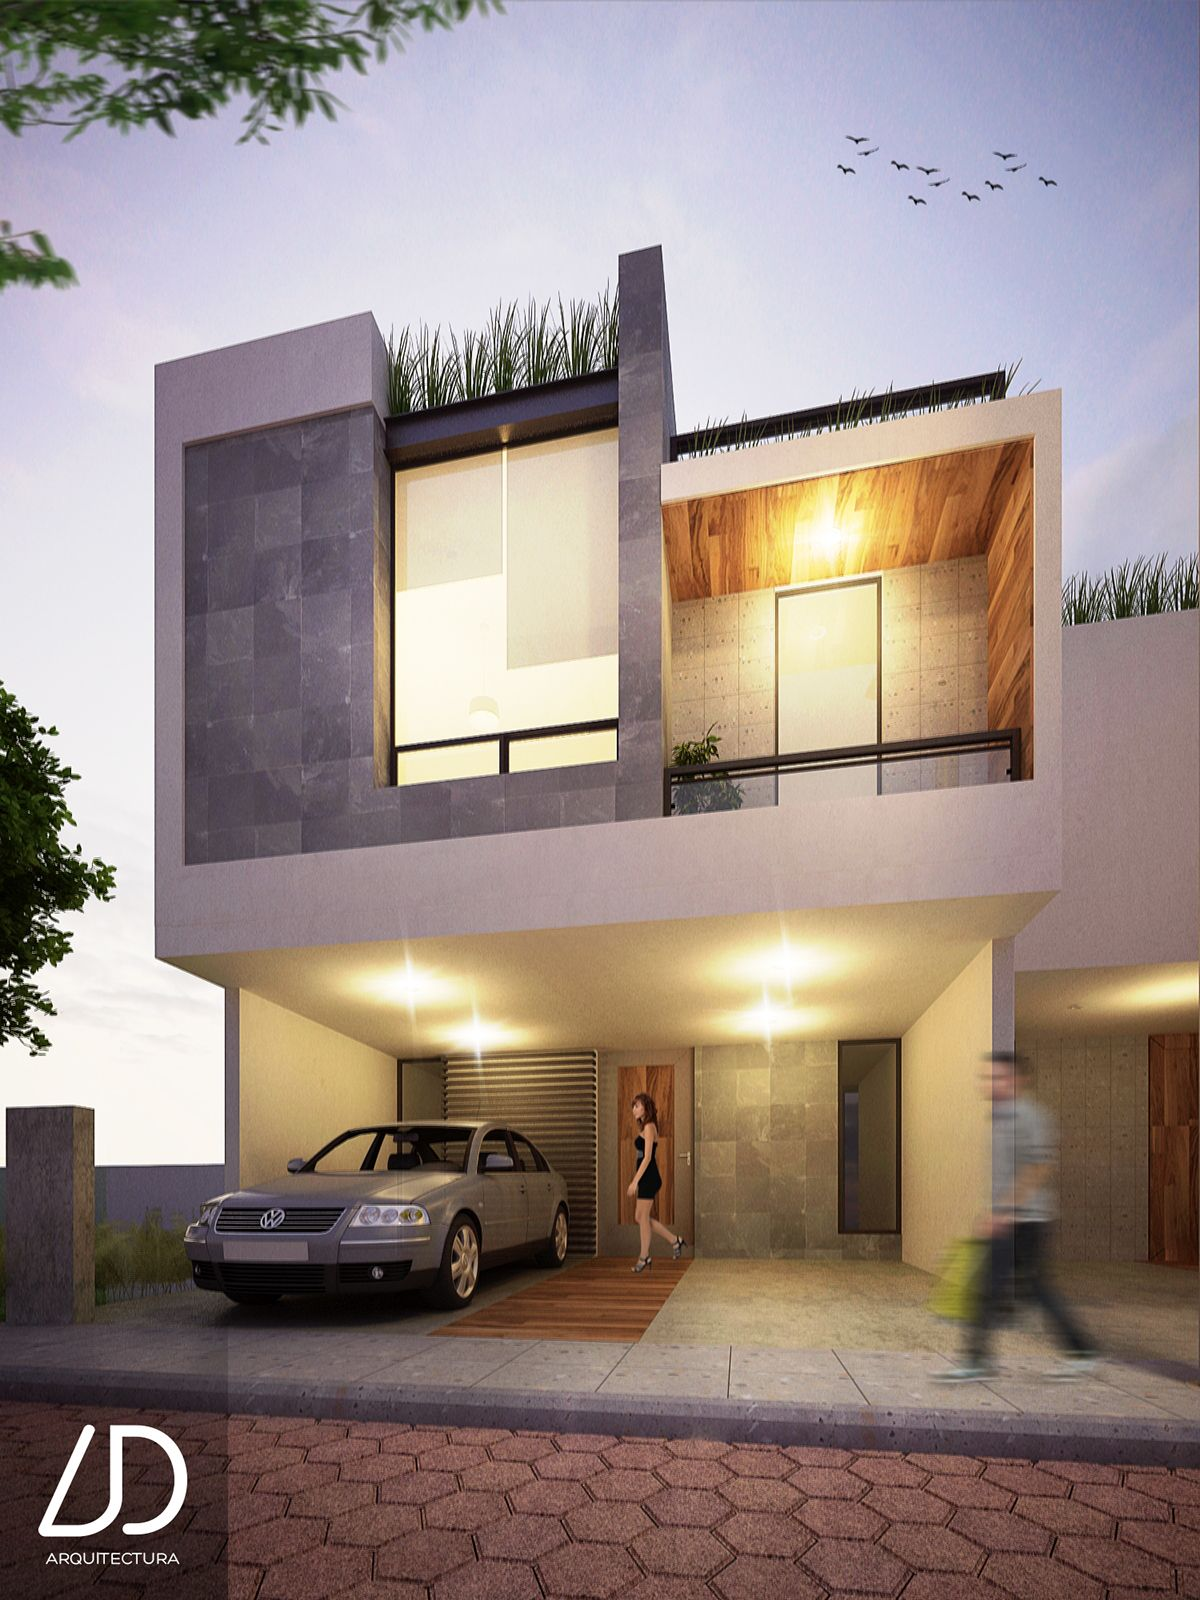 Small but intelligent house in a growth area in the city